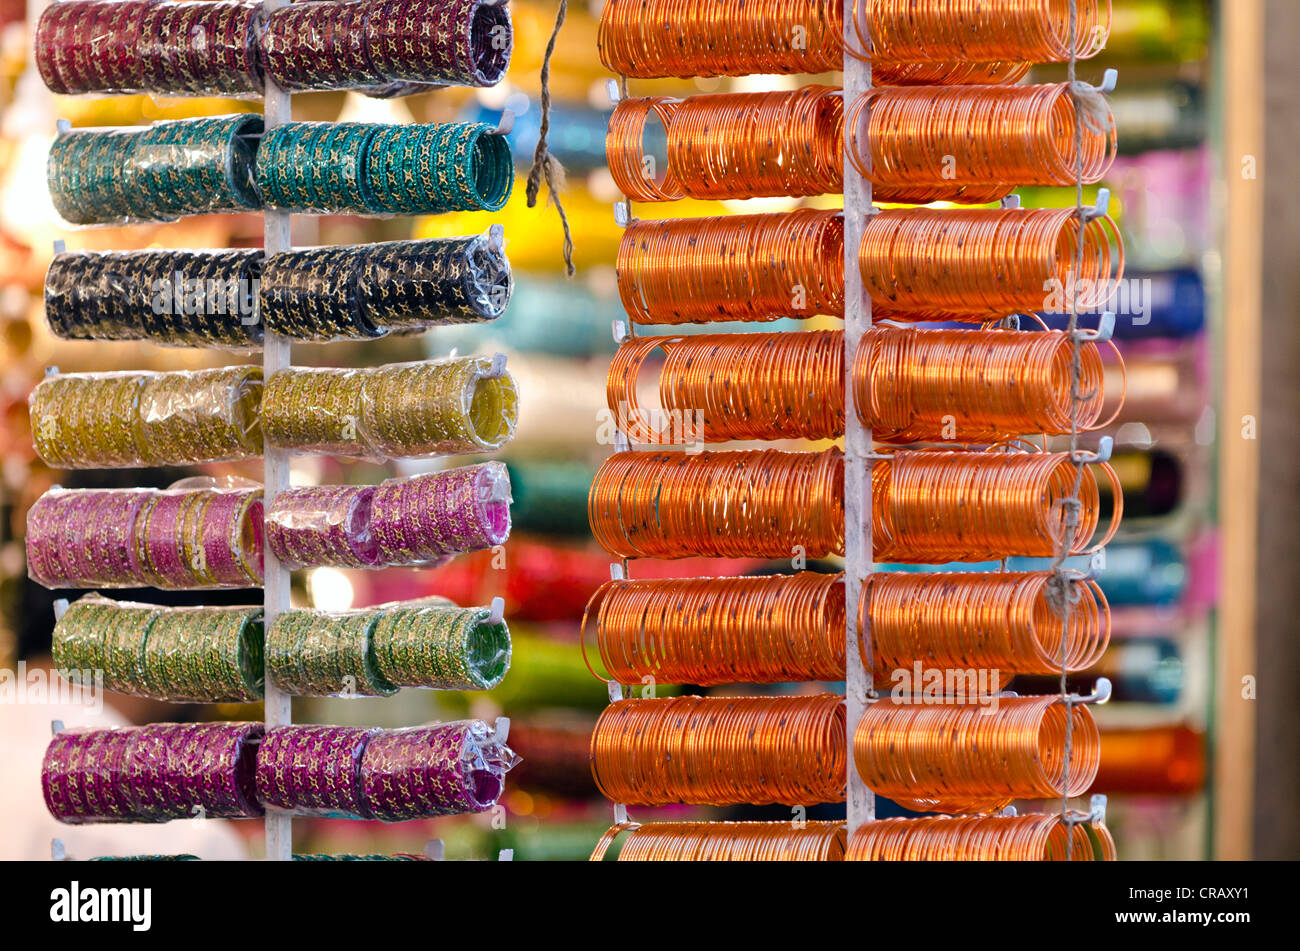 Glass bangles, Laad Baazar, Hyderabad, Andhra Pradesh, India, Asia - Stock Image